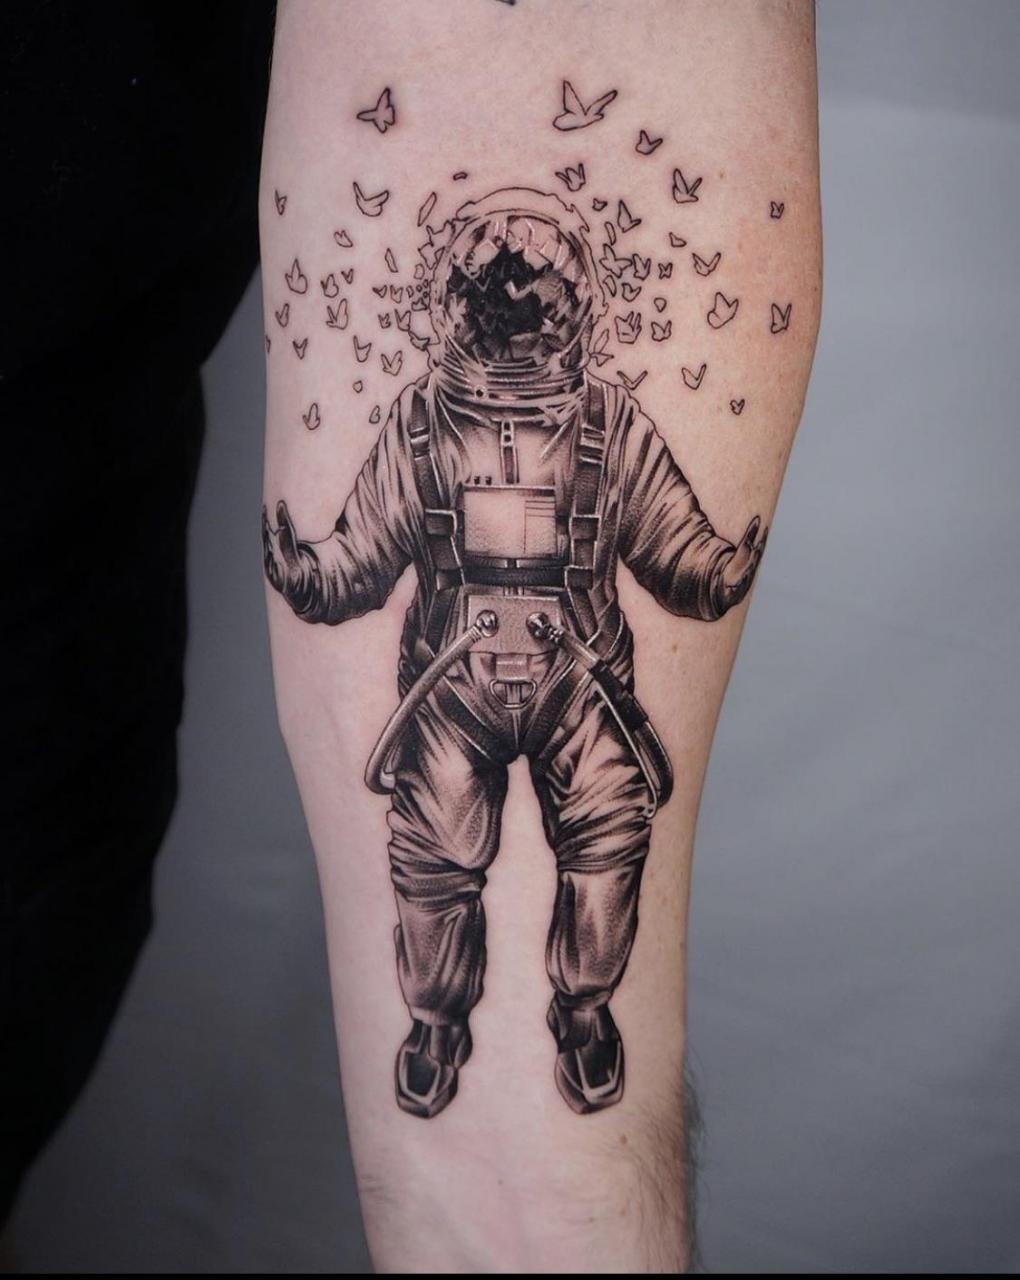 Astronaut with exploding face mask and butterflies Work In Progress. Artist Josh Lucero, Love n Hate Tattoo Studio. Lakewood, CO.